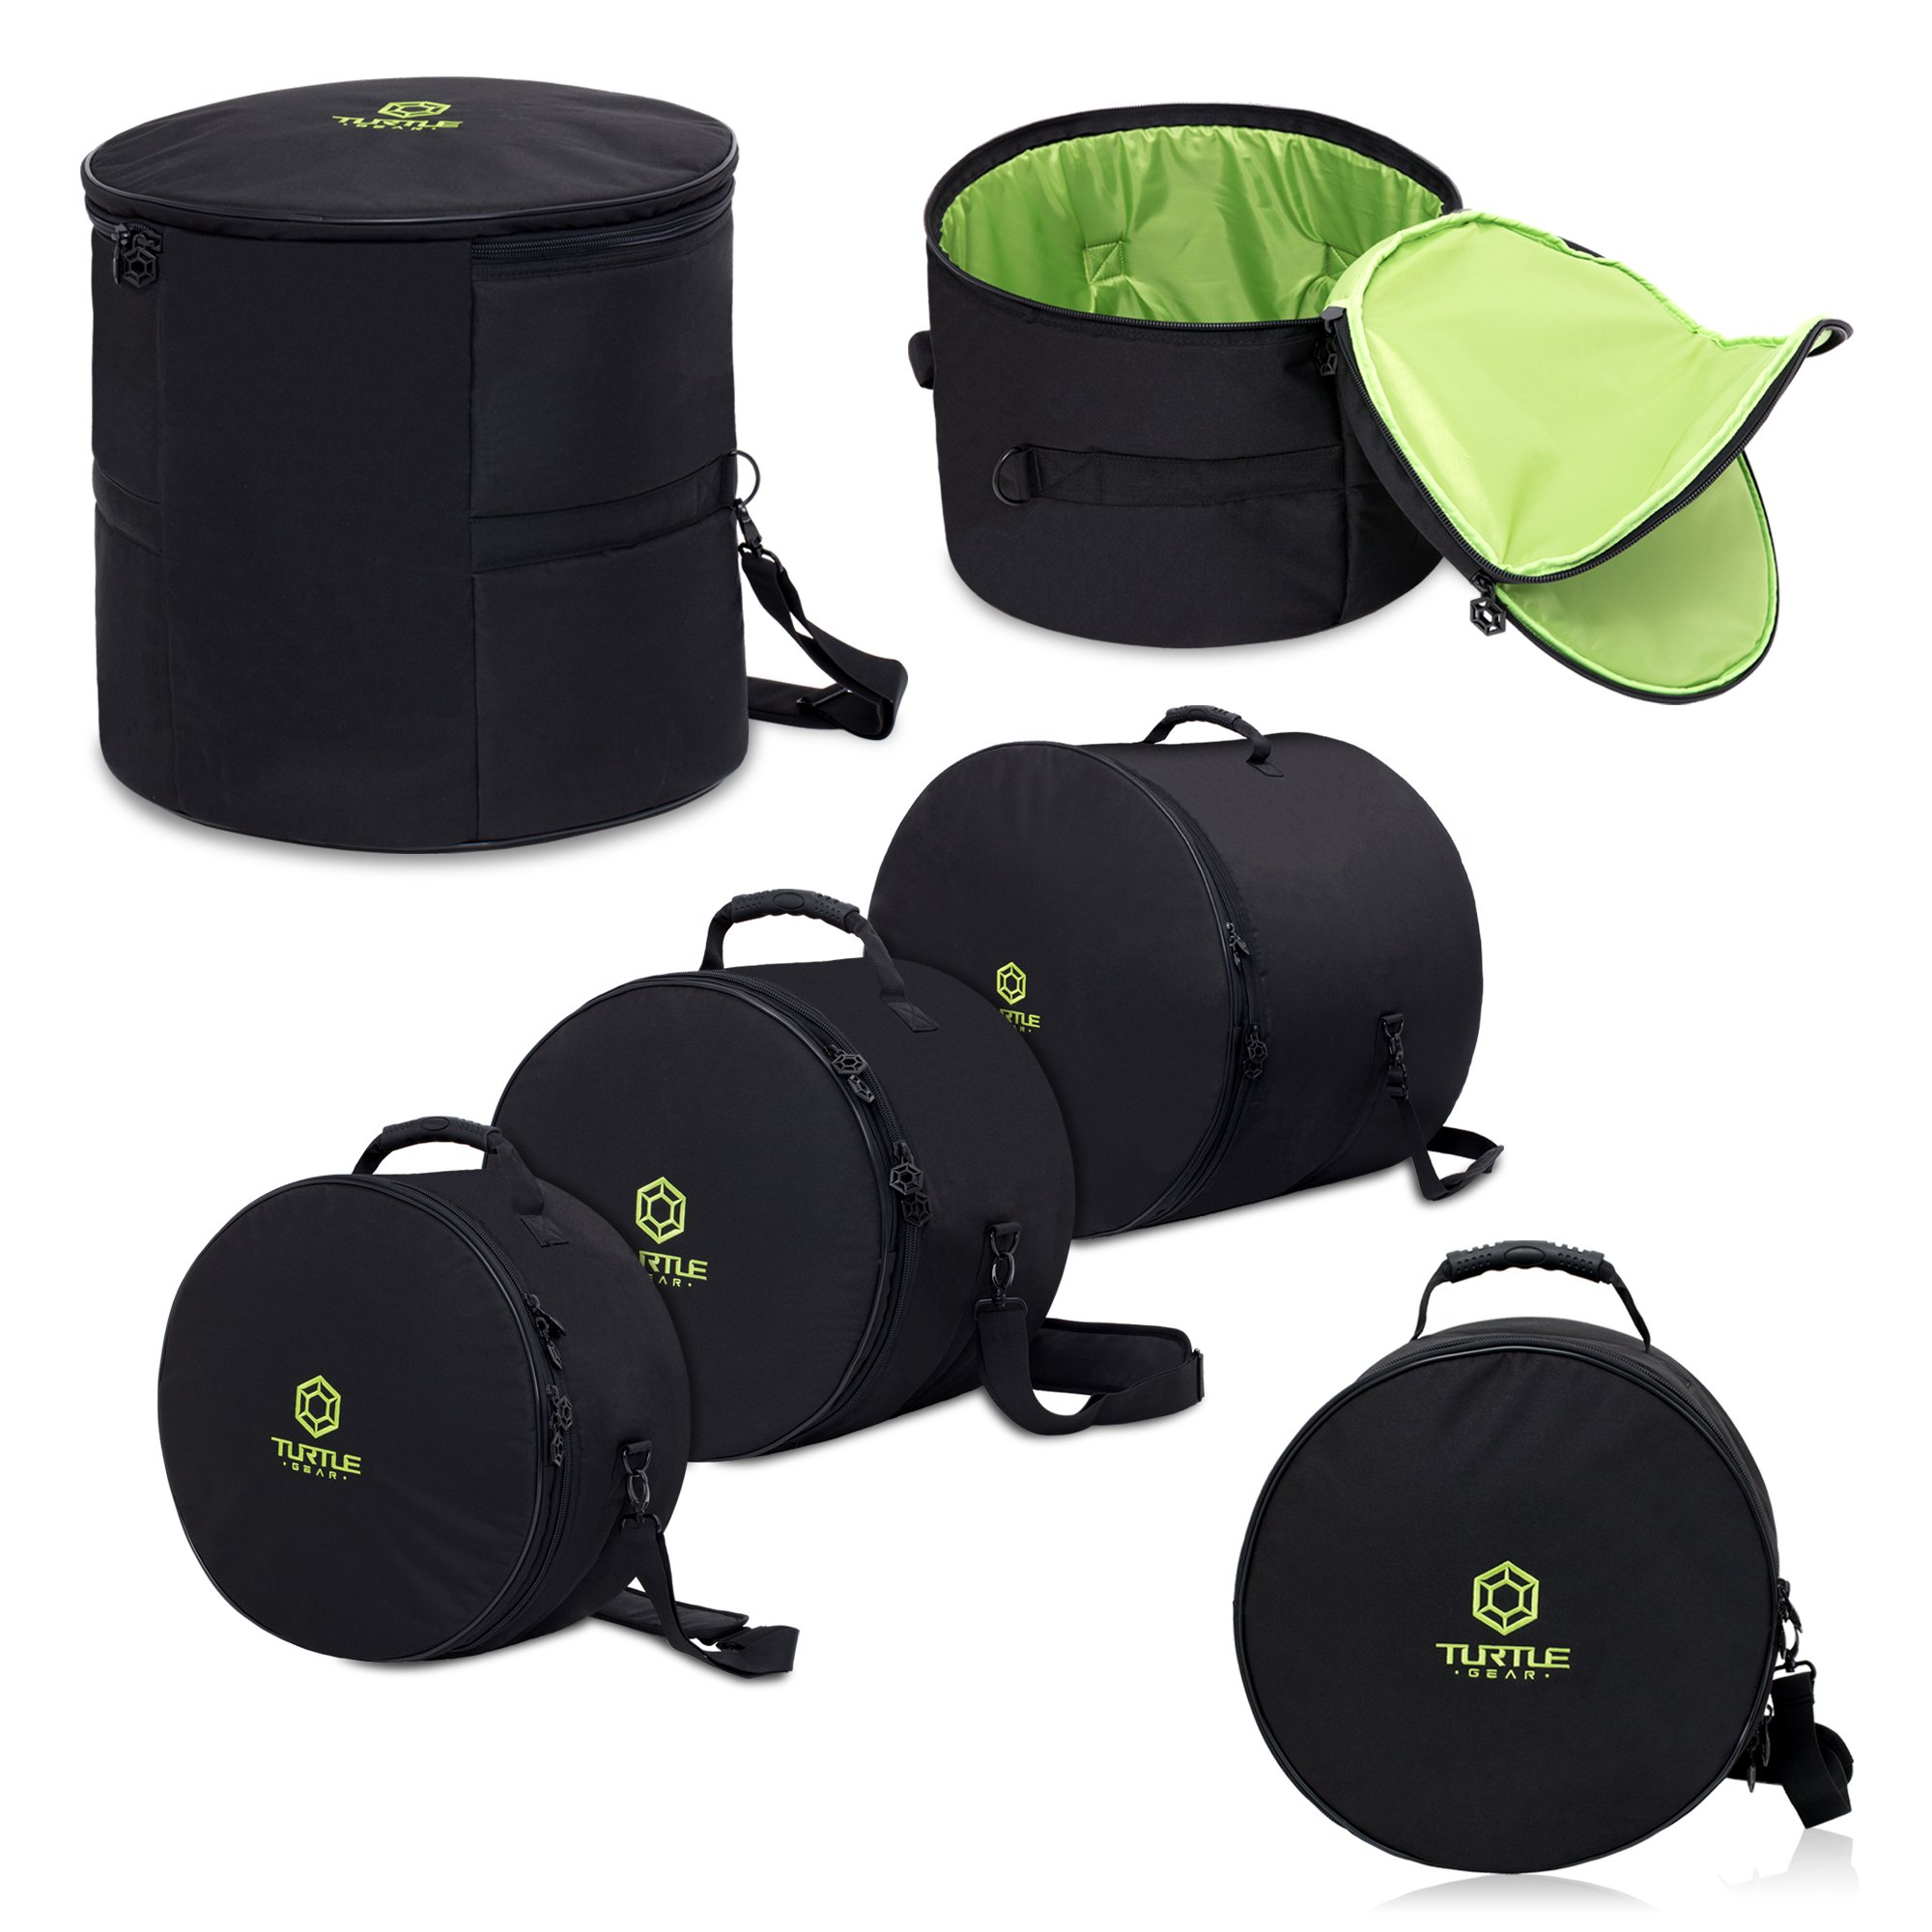 TURTLE GEAR Extra Thick Padded Nylon Drum Case Bags: Standard 5-piece Set by Turtle Gear (Image #1)